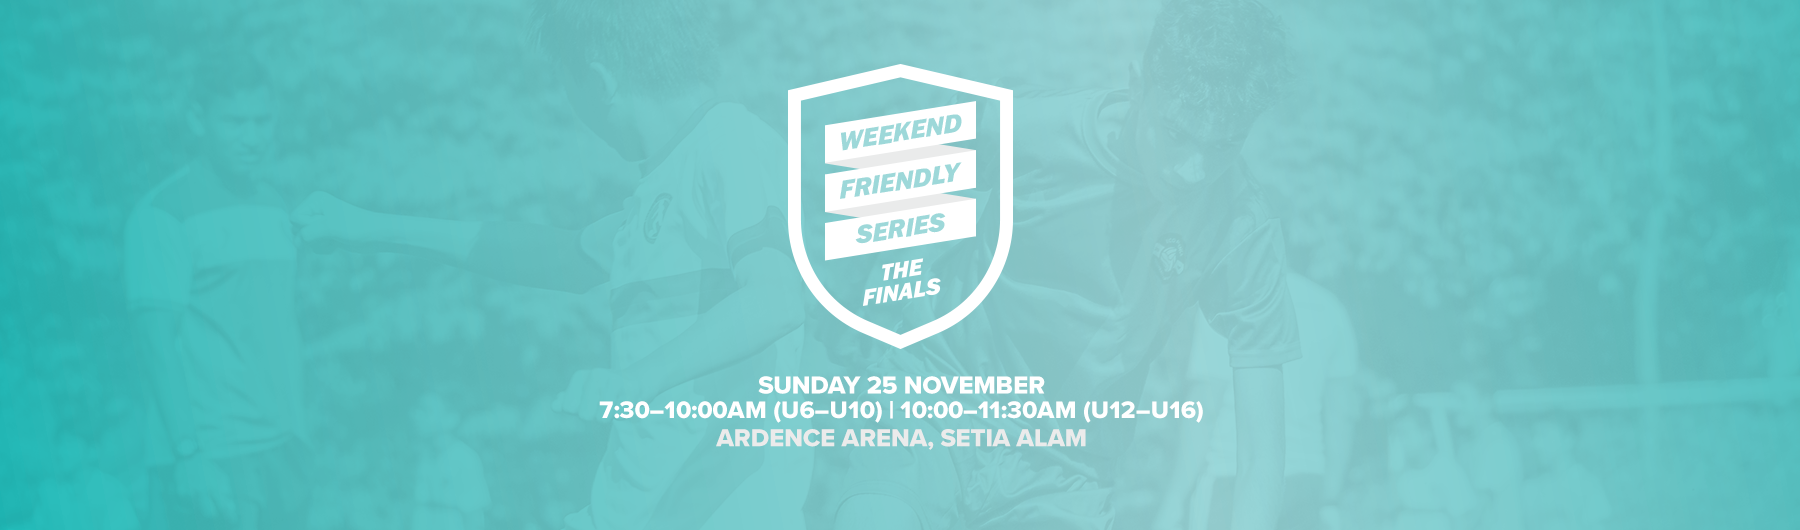 Weekend Friendly Series Finals | Ardence Arena